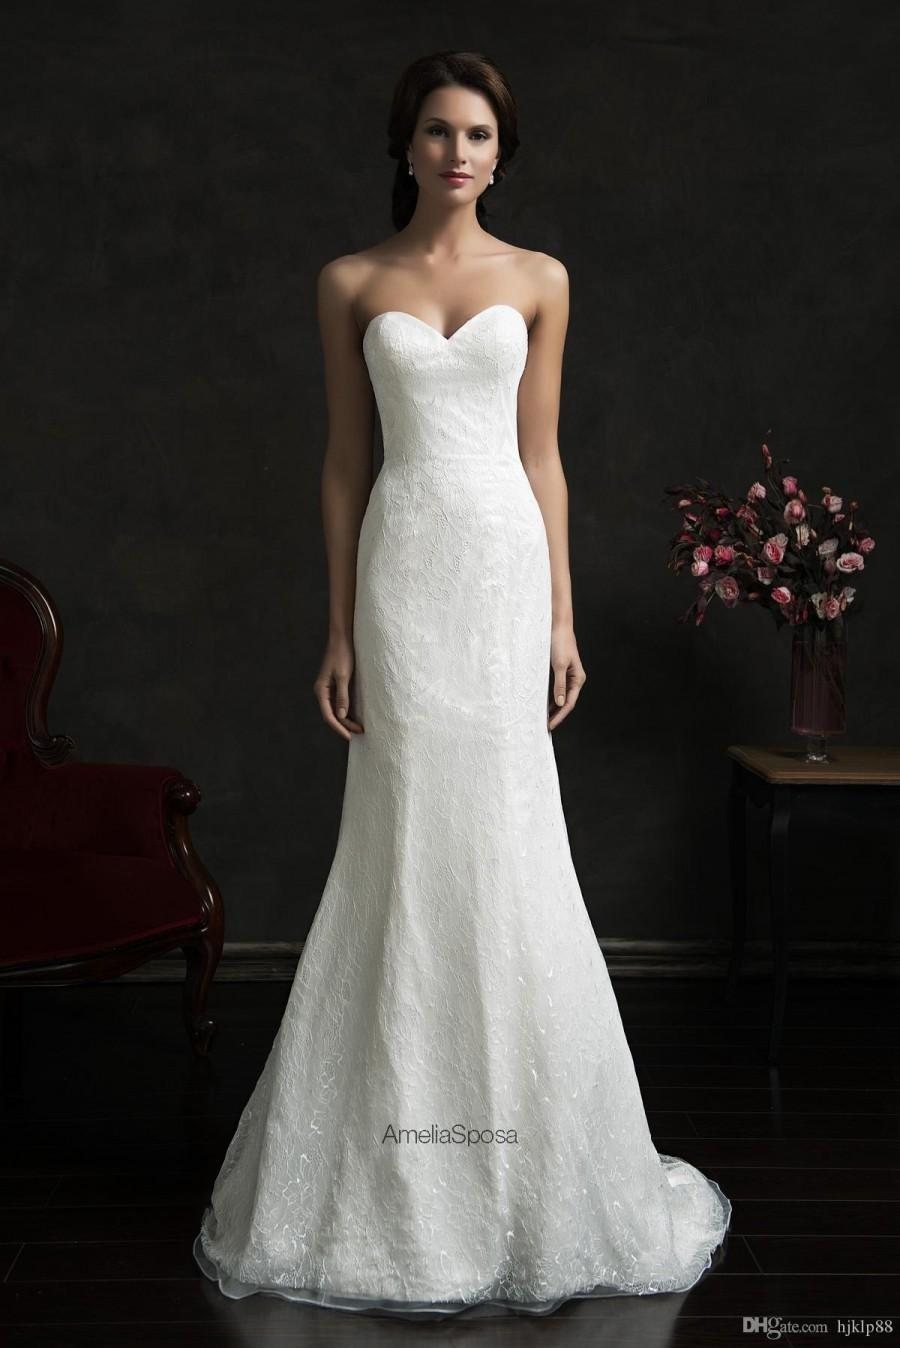 Bright simple style sleeveless wedding dresses 2015 amelia for Amelia sposa wedding dress